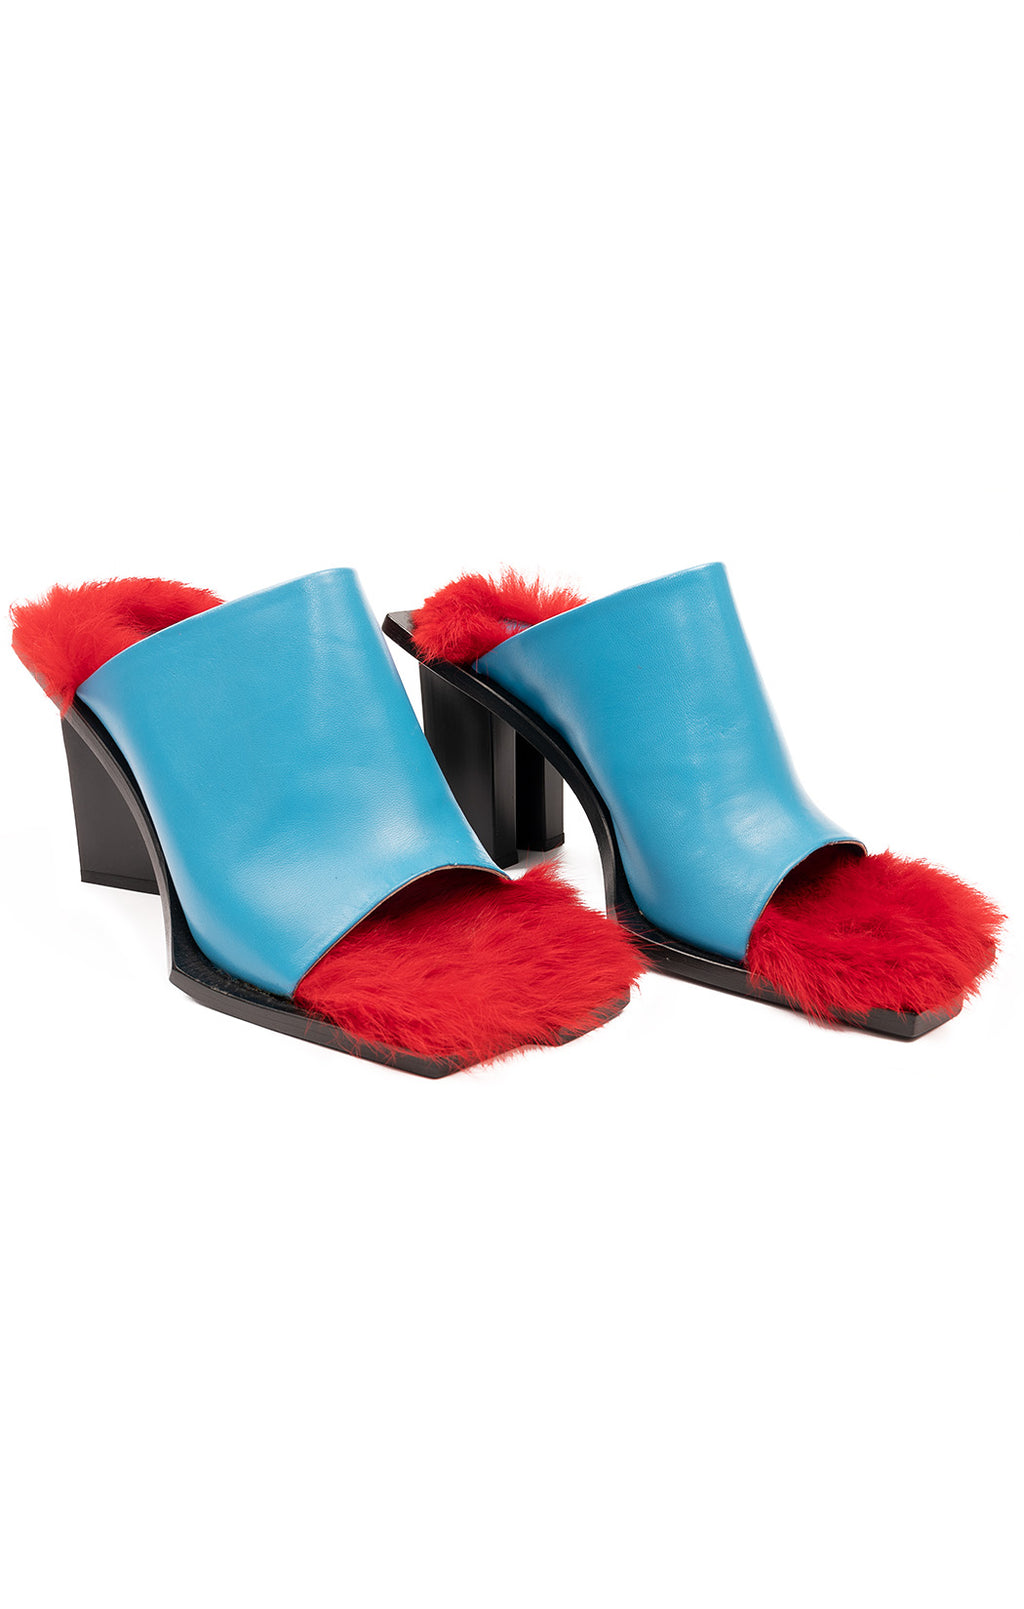 Turquoise with red fur lining slides